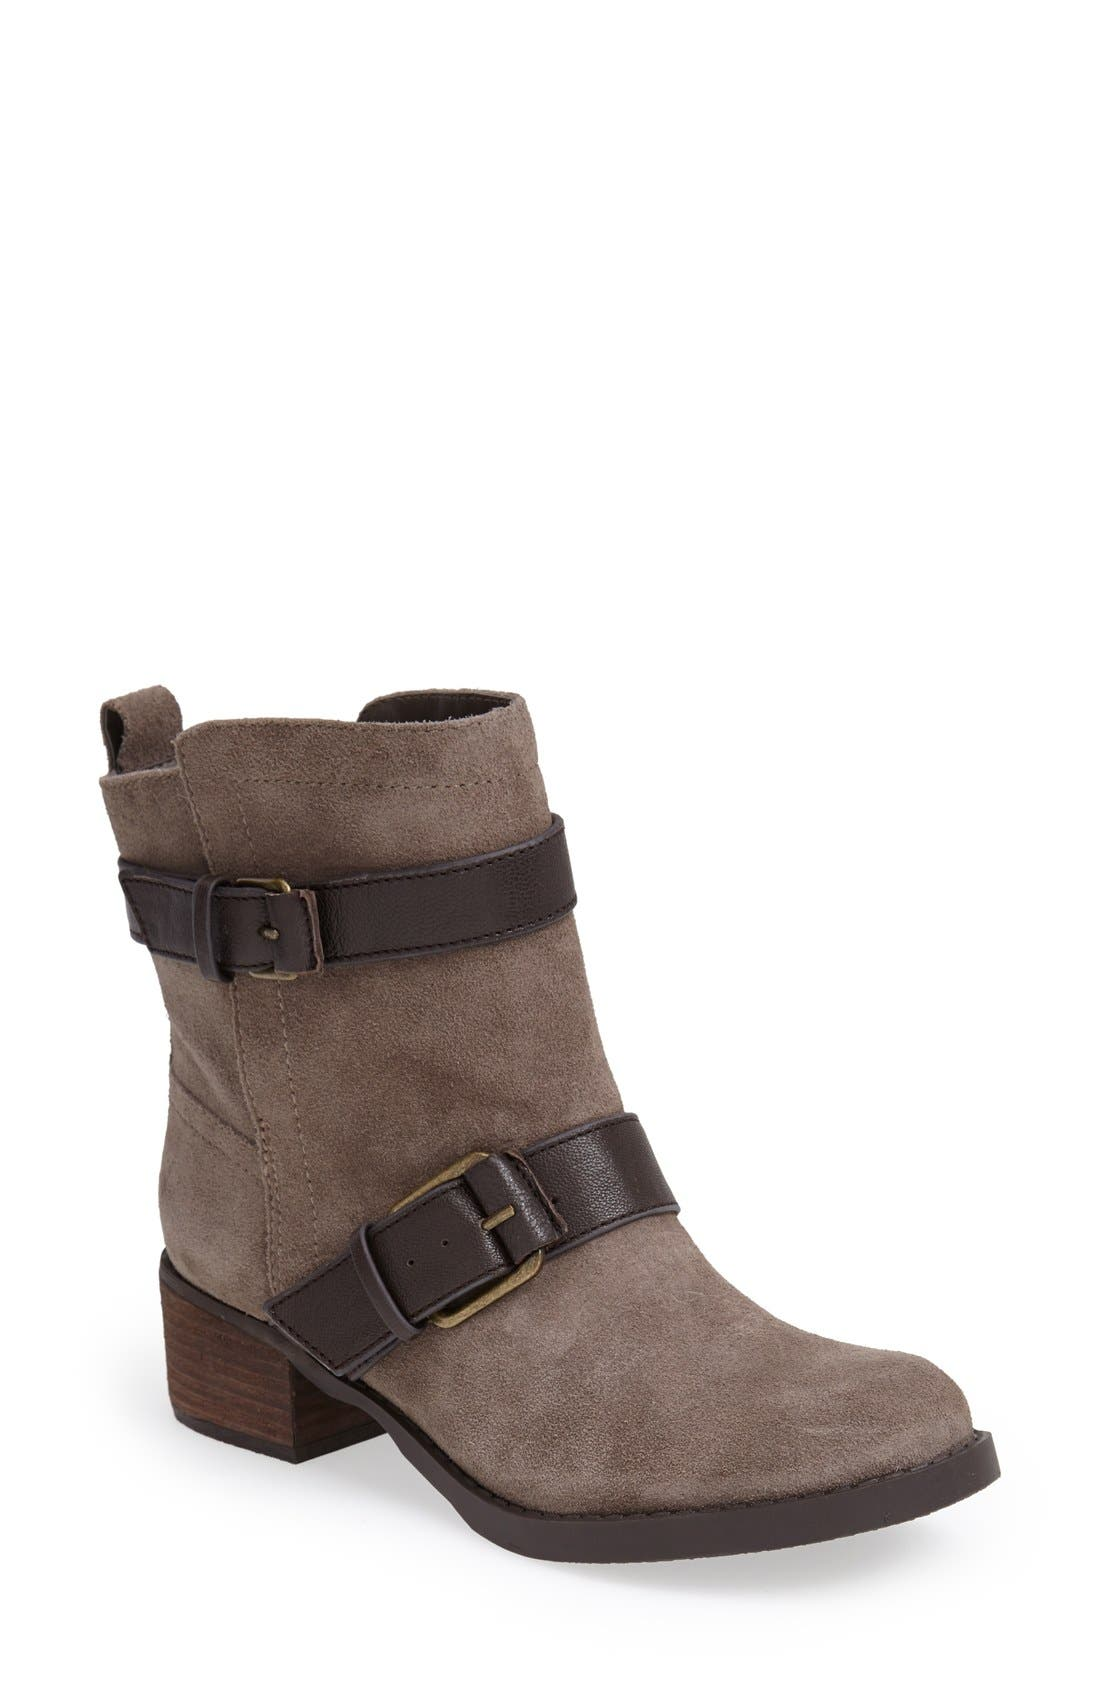 Alternate Image 1 Selected - Sole Society 'Kai' Suede Moto Boot (Women)